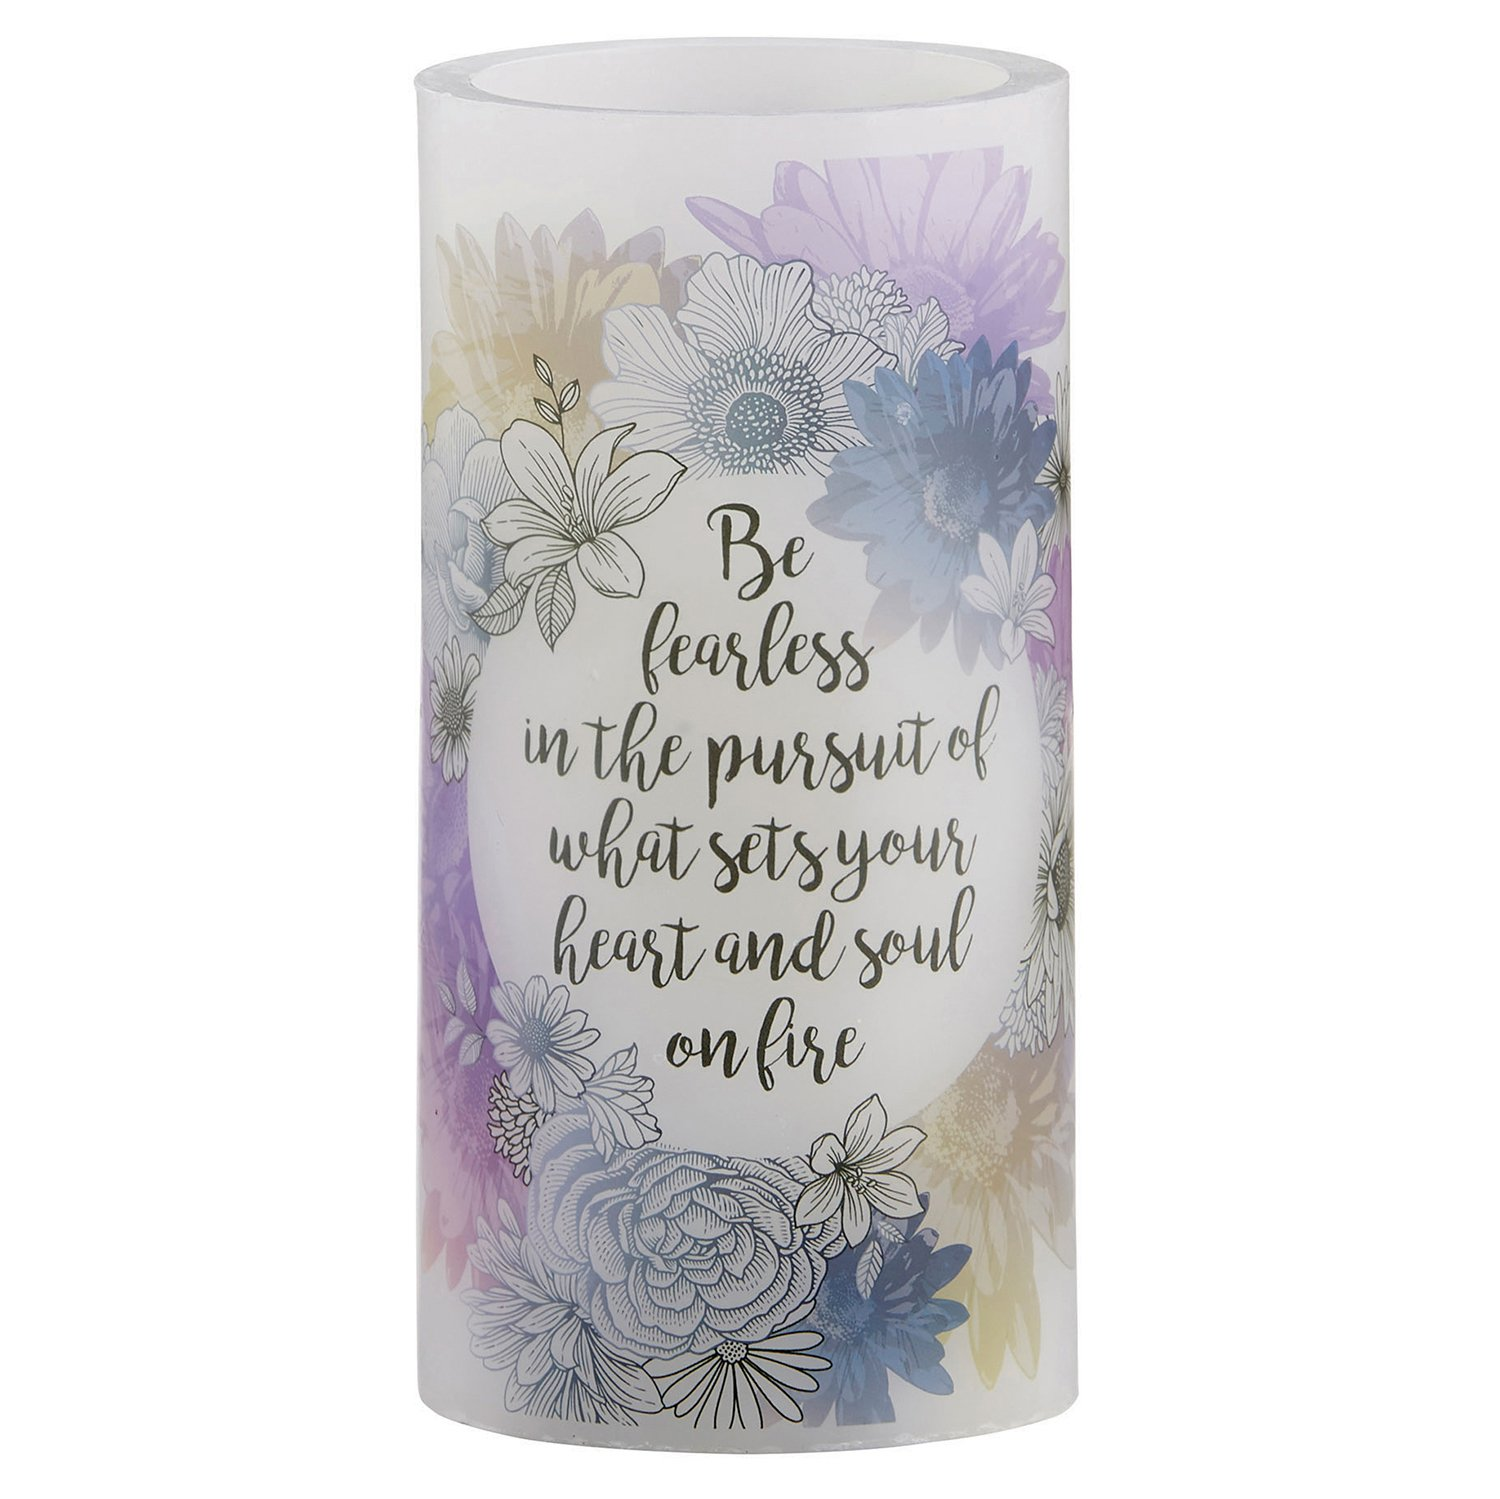 CB Gift Heart Led Candle, 3″ x 6″, Prayer Without Cleansing